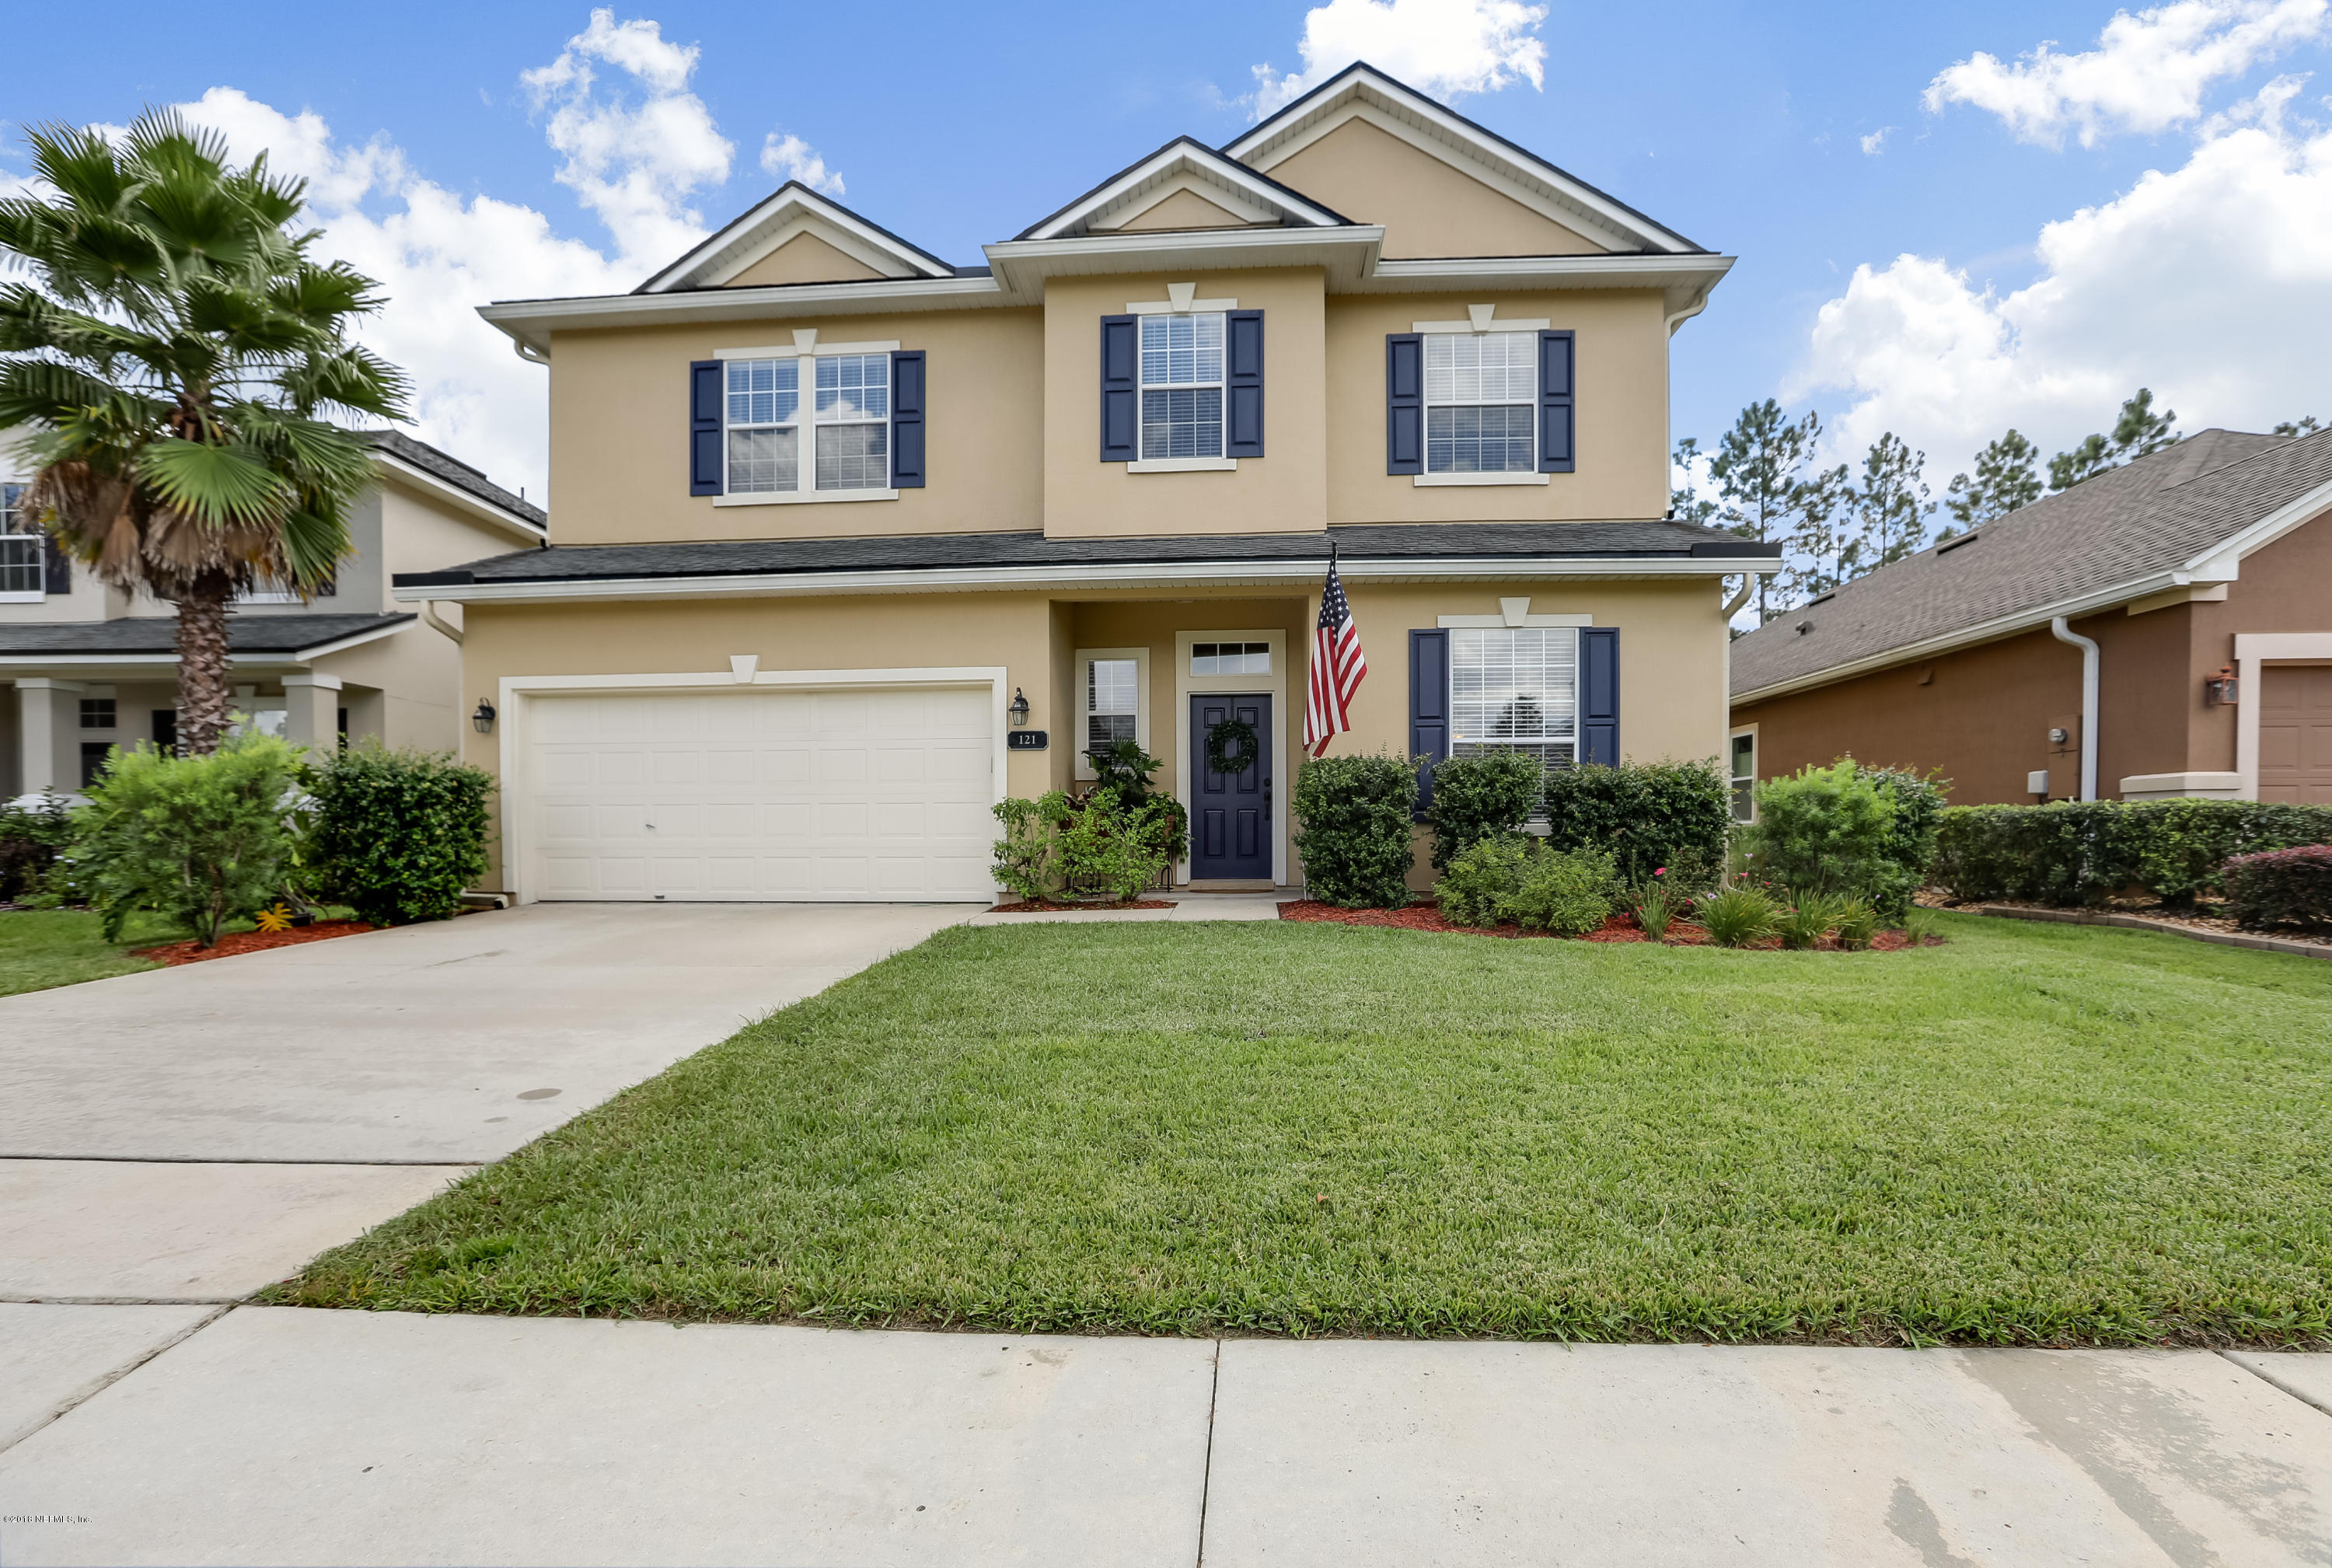 121 CASTLEGATE, ST JOHNS, FLORIDA 32259, 5 Bedrooms Bedrooms, ,3 BathroomsBathrooms,Residential - single family,For sale,CASTLEGATE,960397